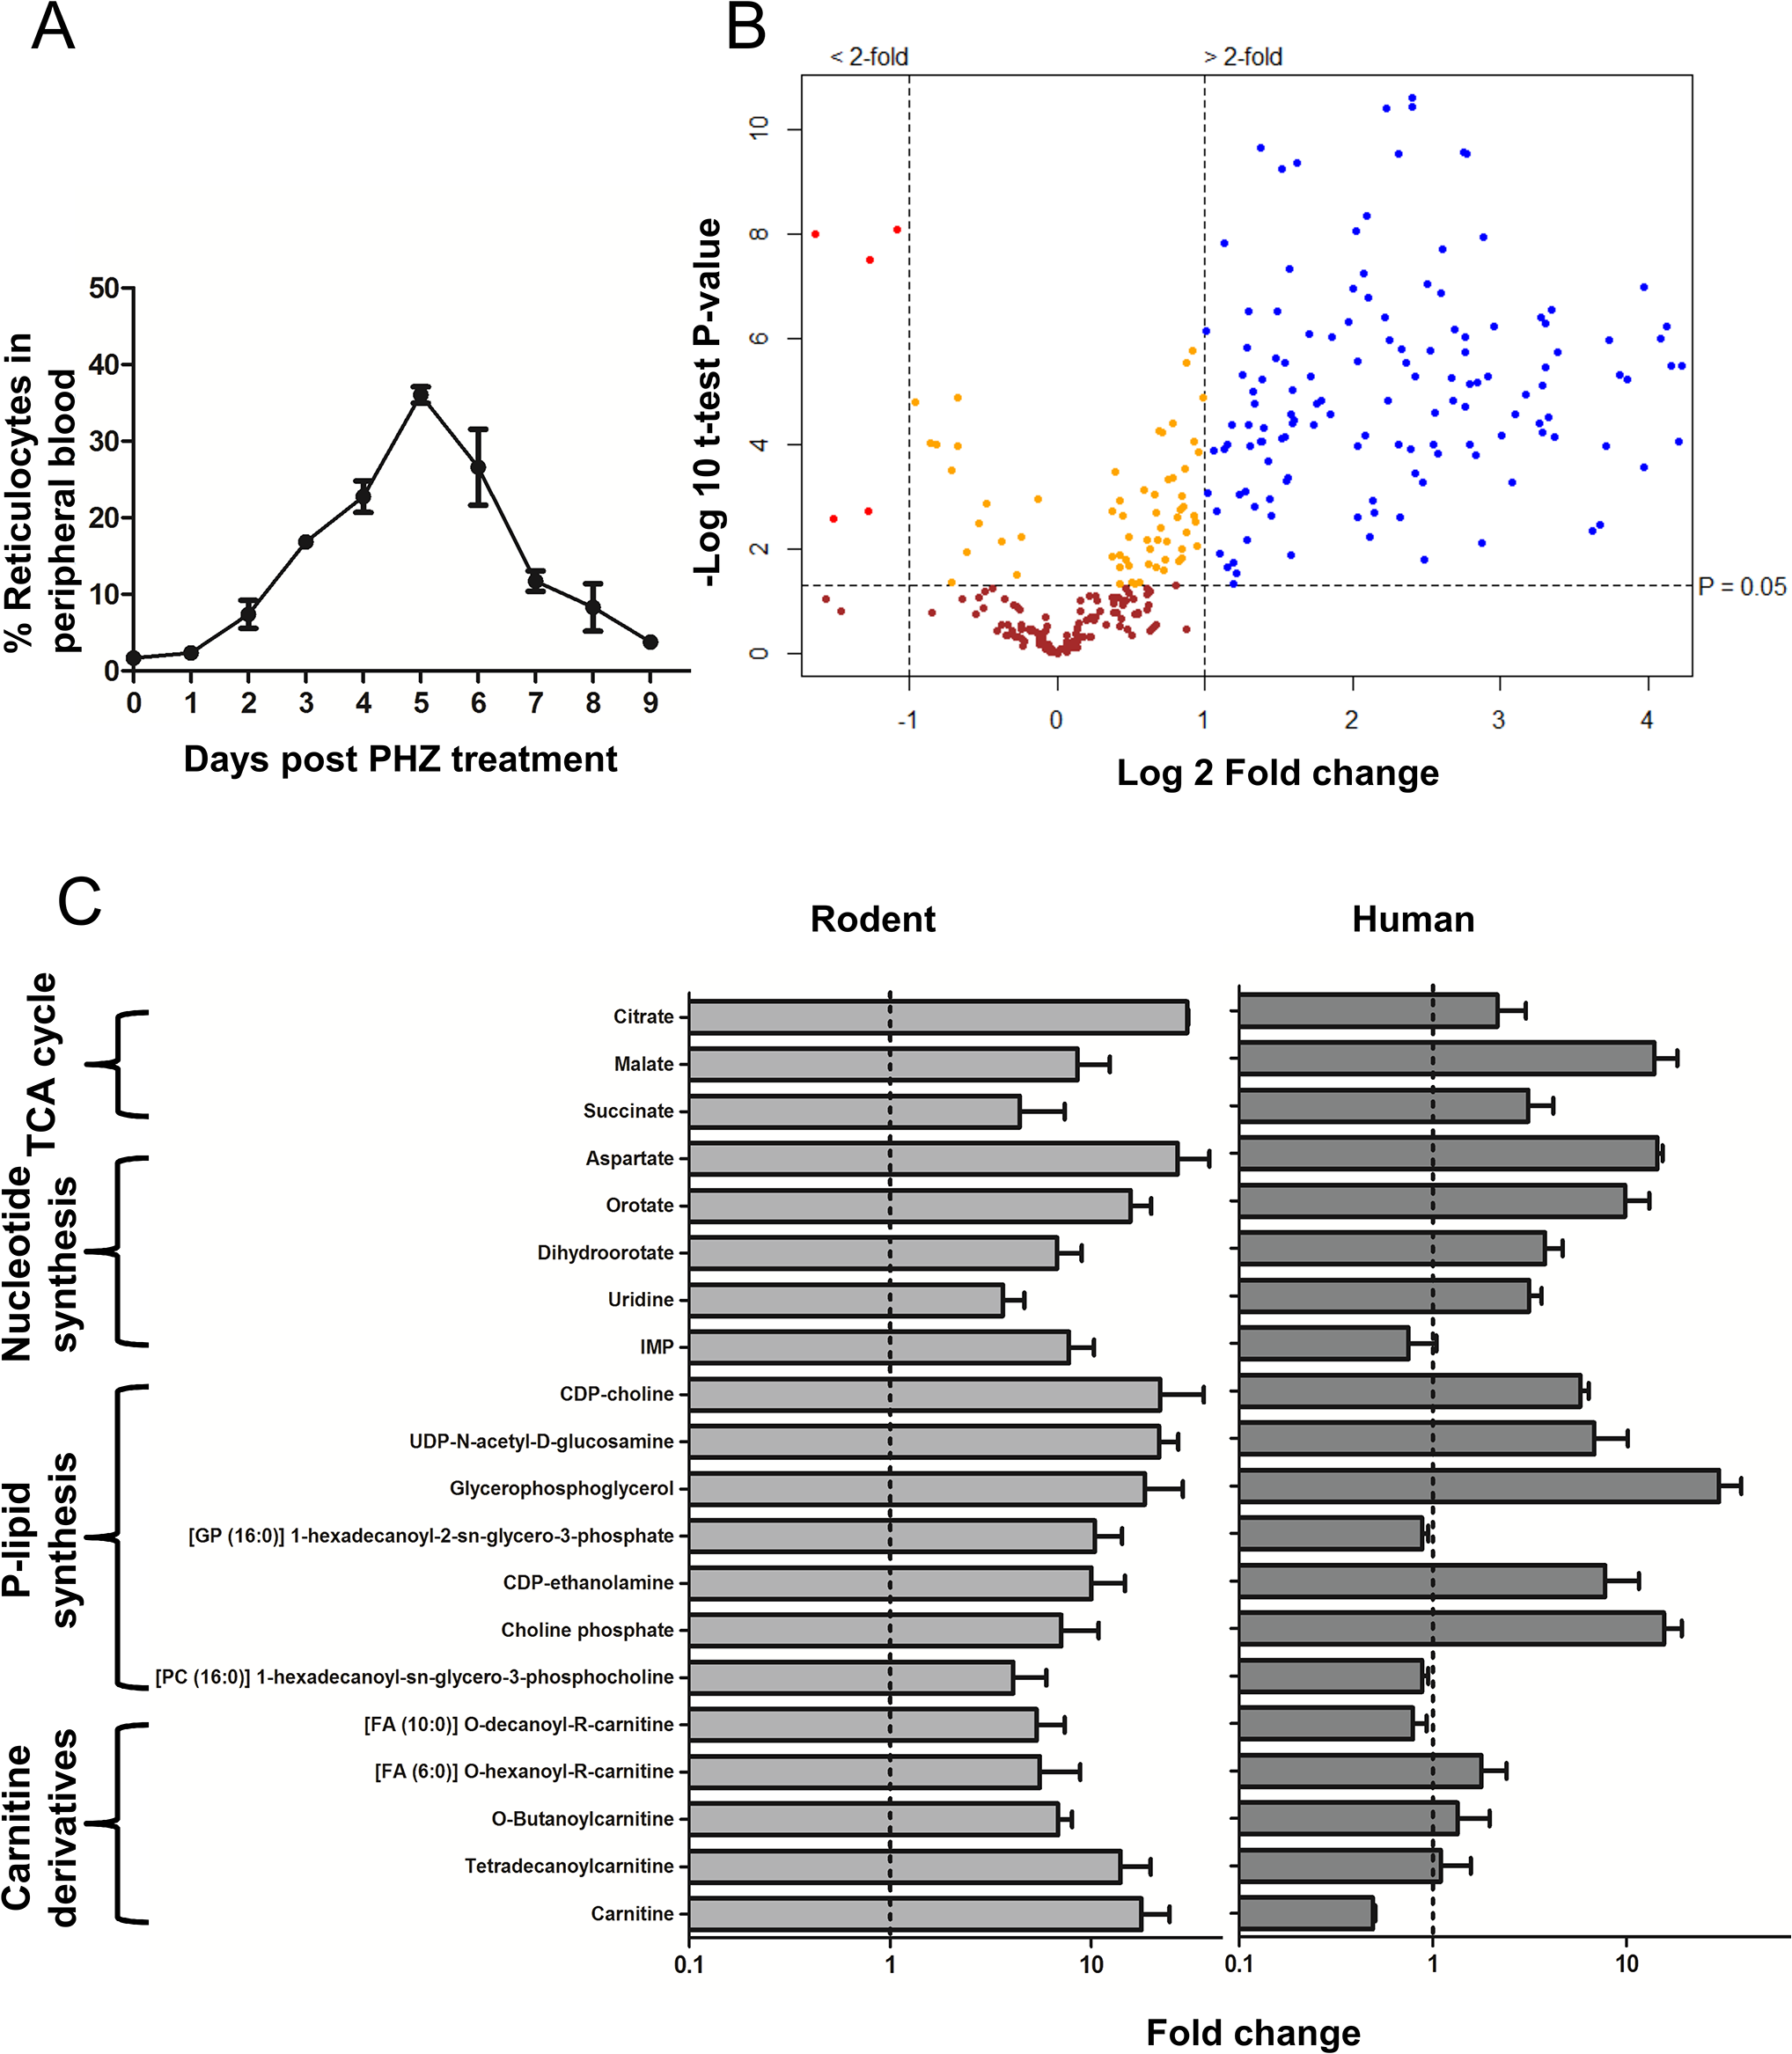 Comparison of Reticulocyte enriched Erythrocyte Population (REP) and wild type Erythrocyte Population (wtEP) reveals metabolite enrichment in rodent and human reticulocytes.